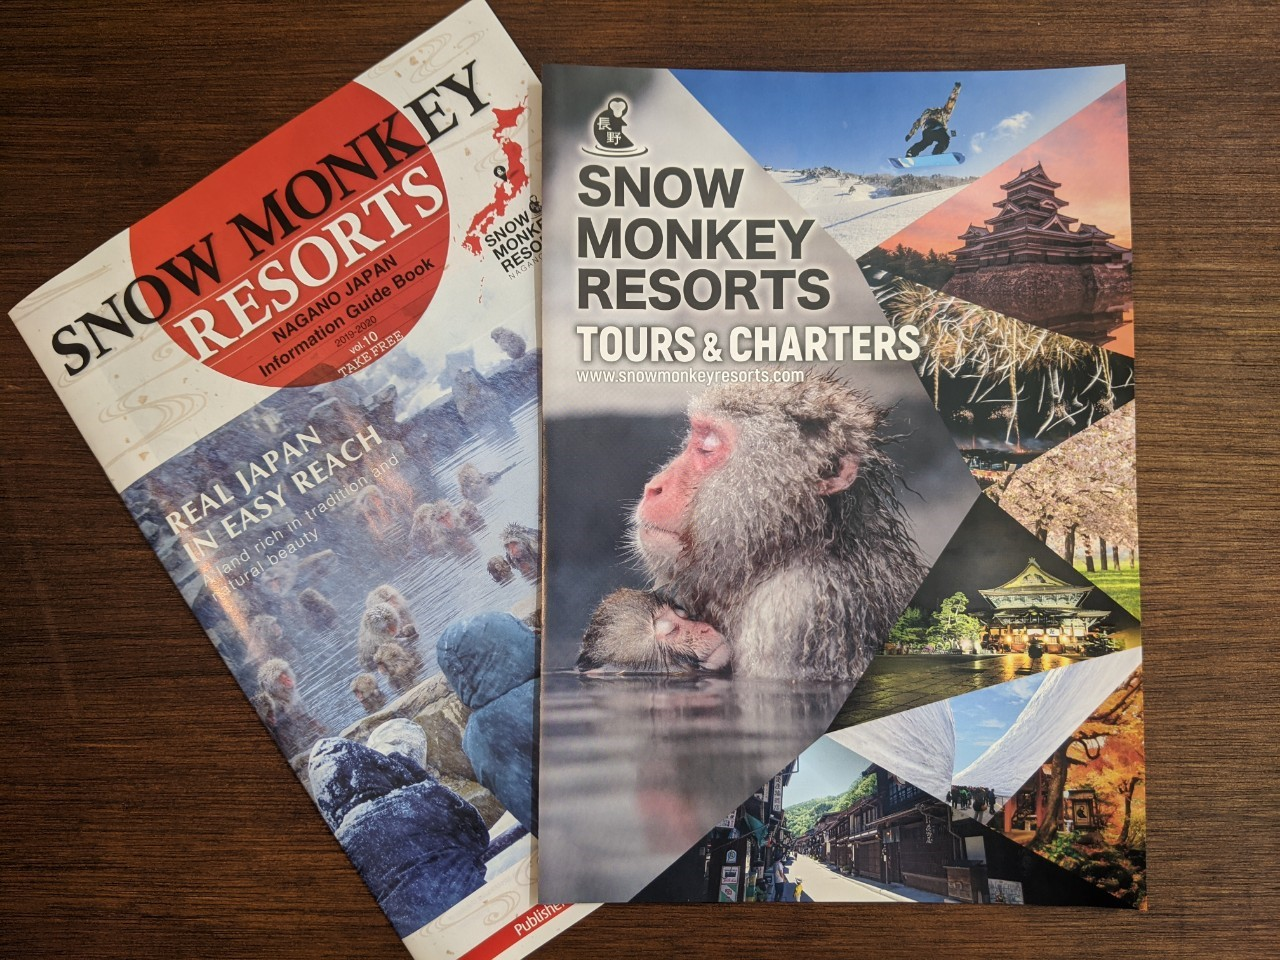 Snow Monkey Resorts旅遊諮詢台